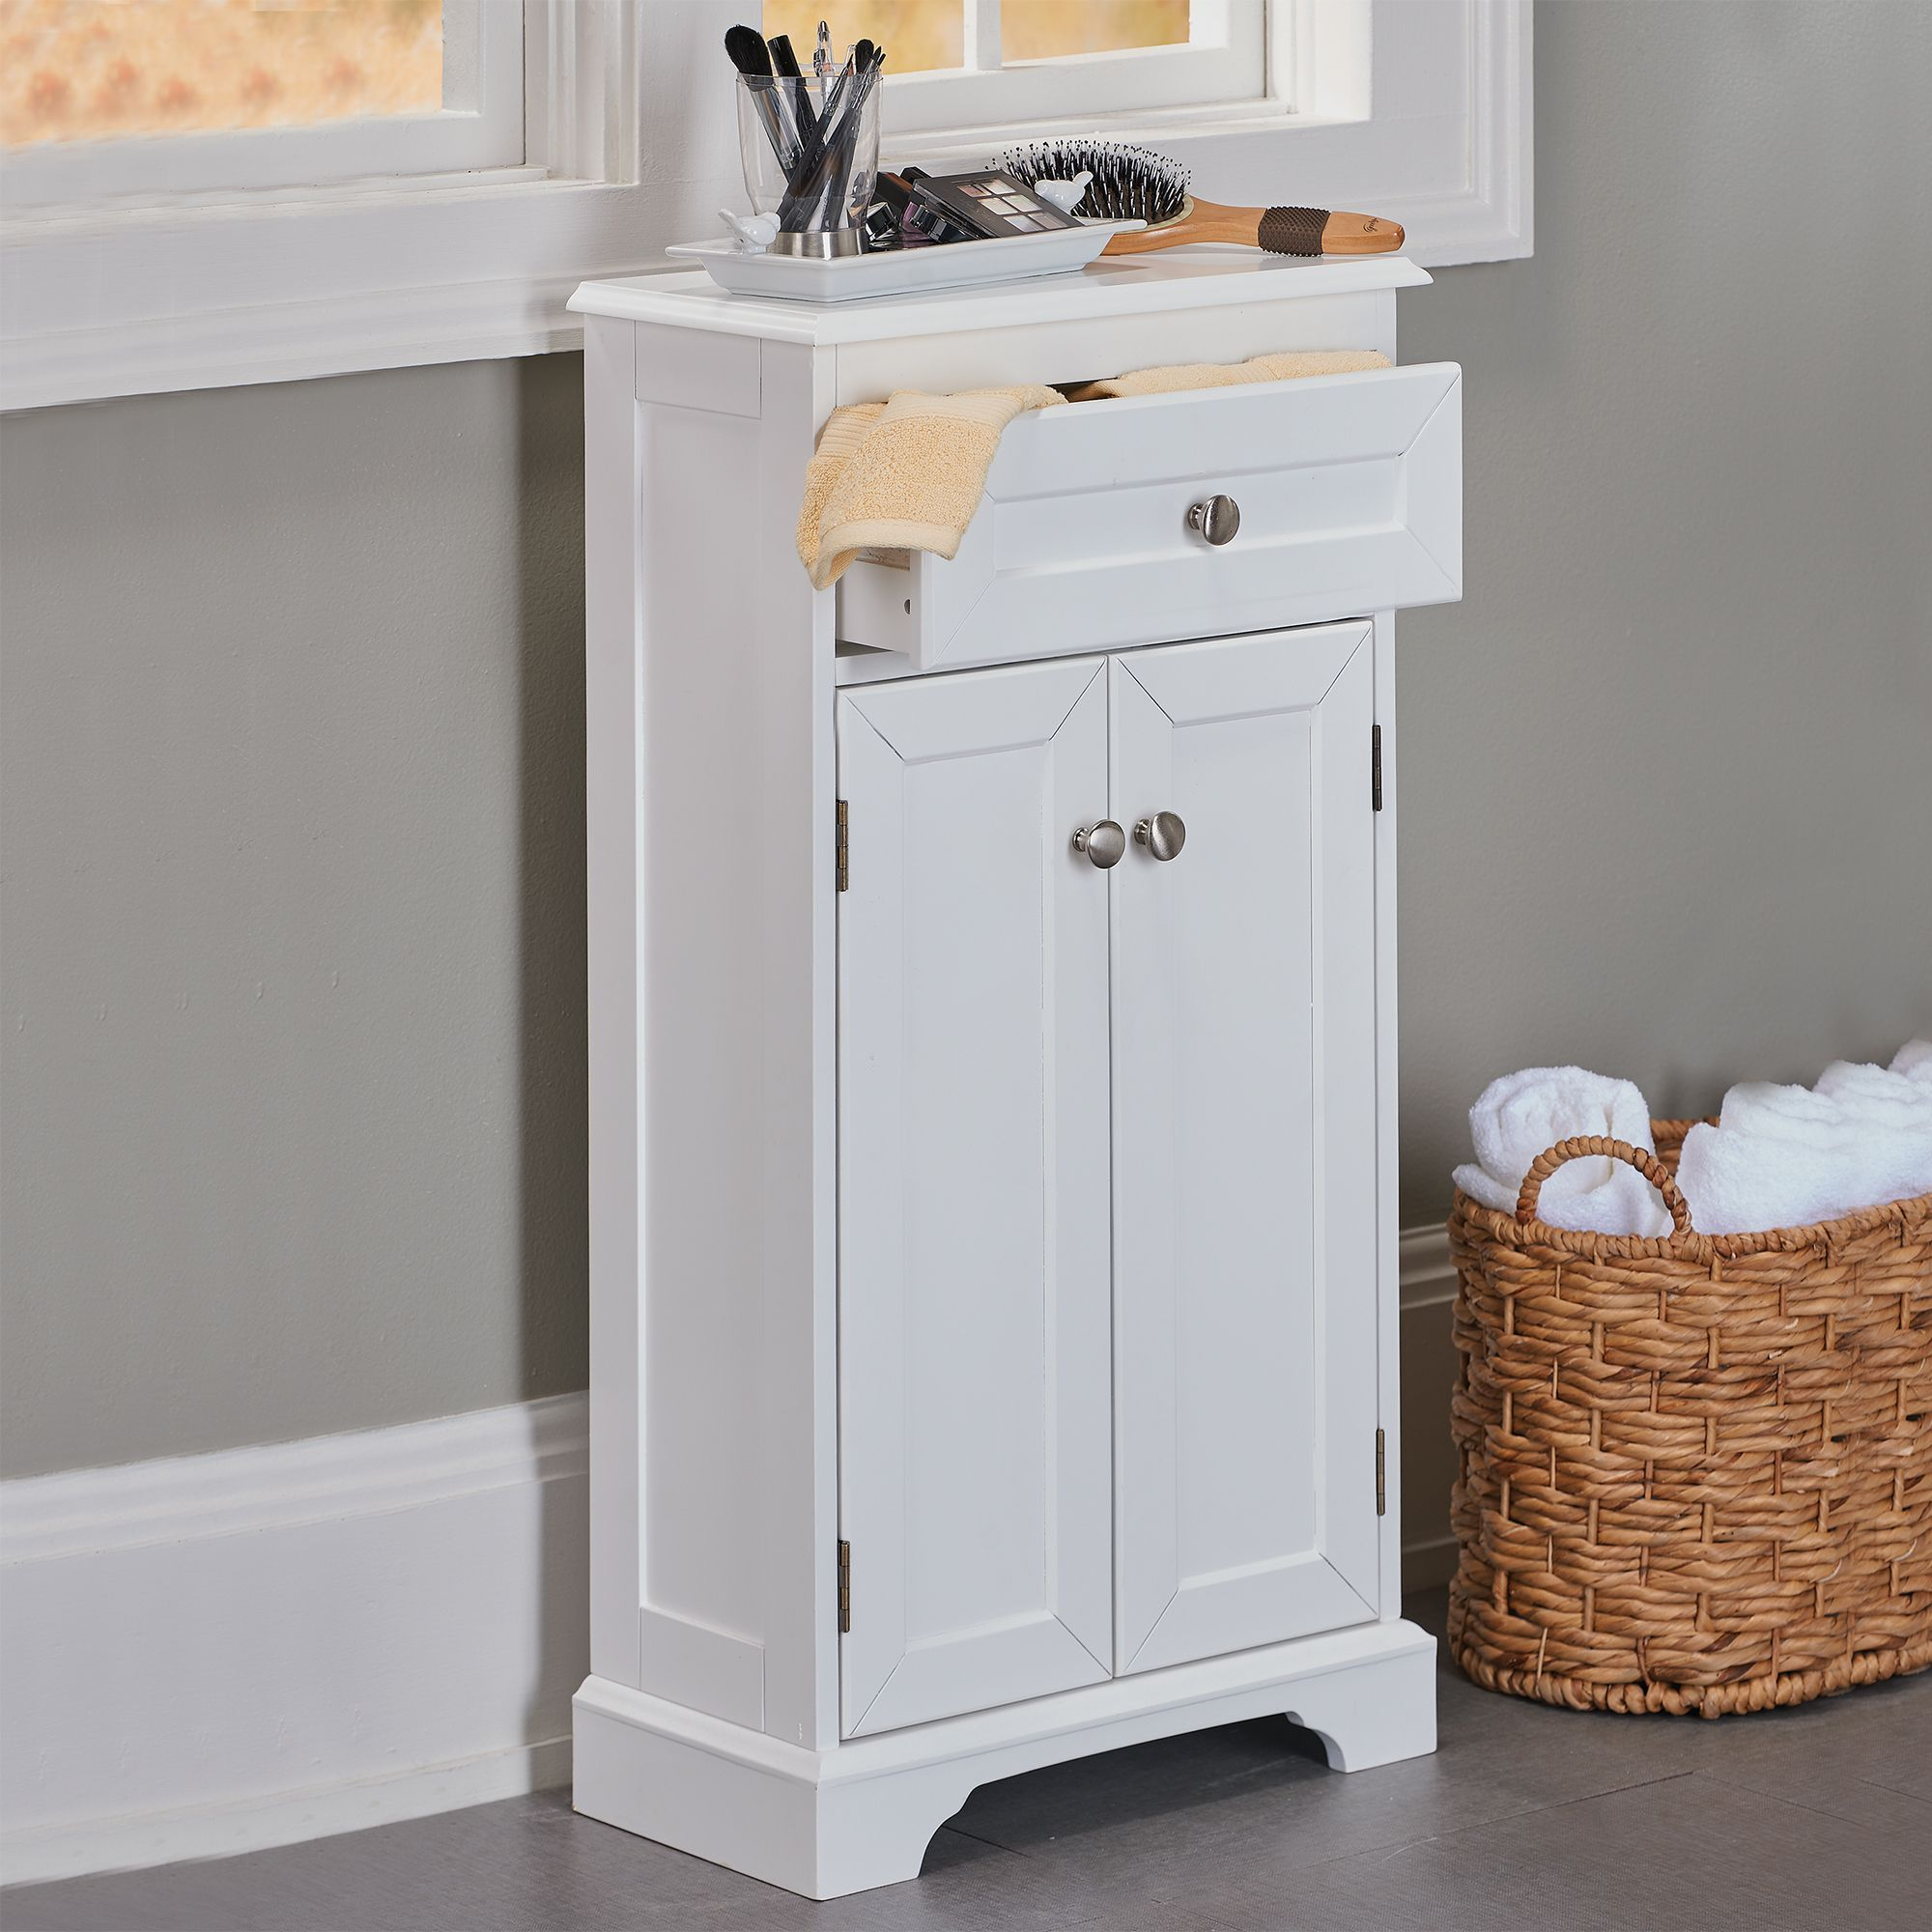 Weatherby white bathroom cabinet its slim design and for Bathroom cabinets small spaces